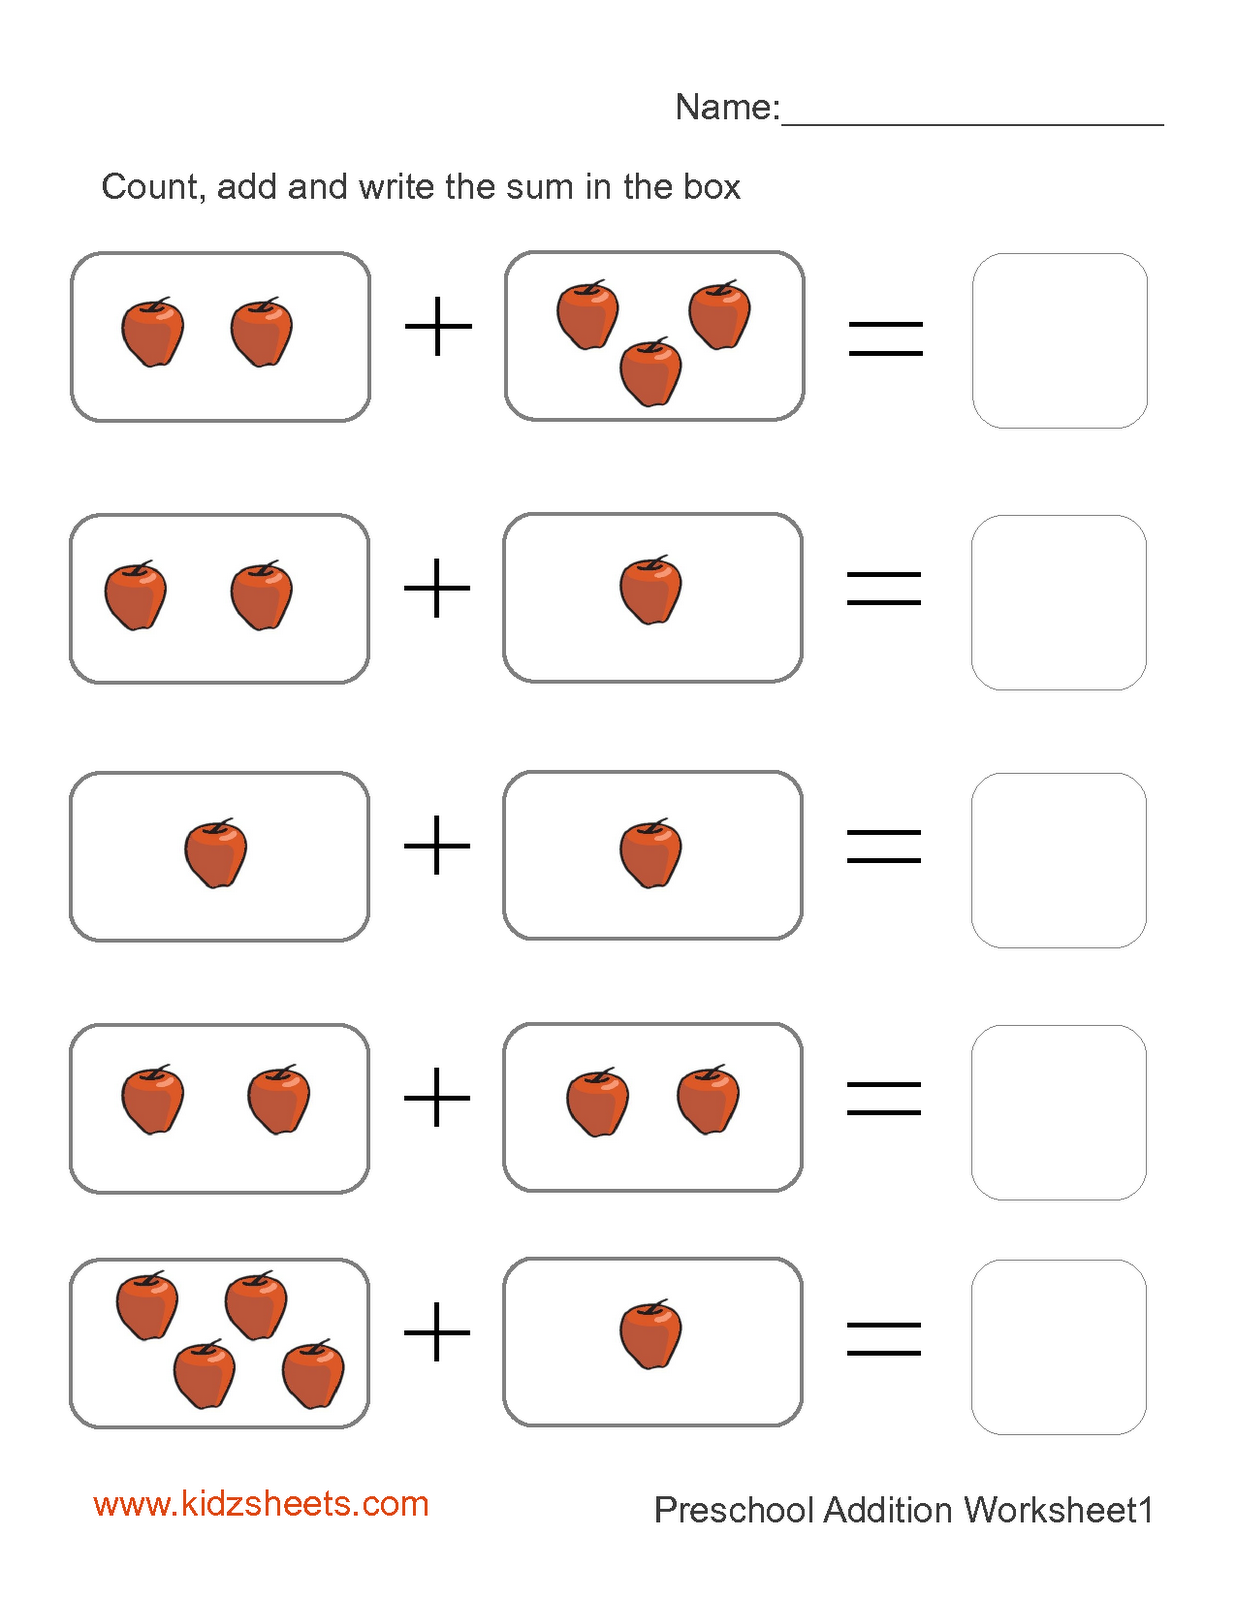 Adding One is a simple printable math worksheet with lots of – Printable Maths Worksheets for Kids